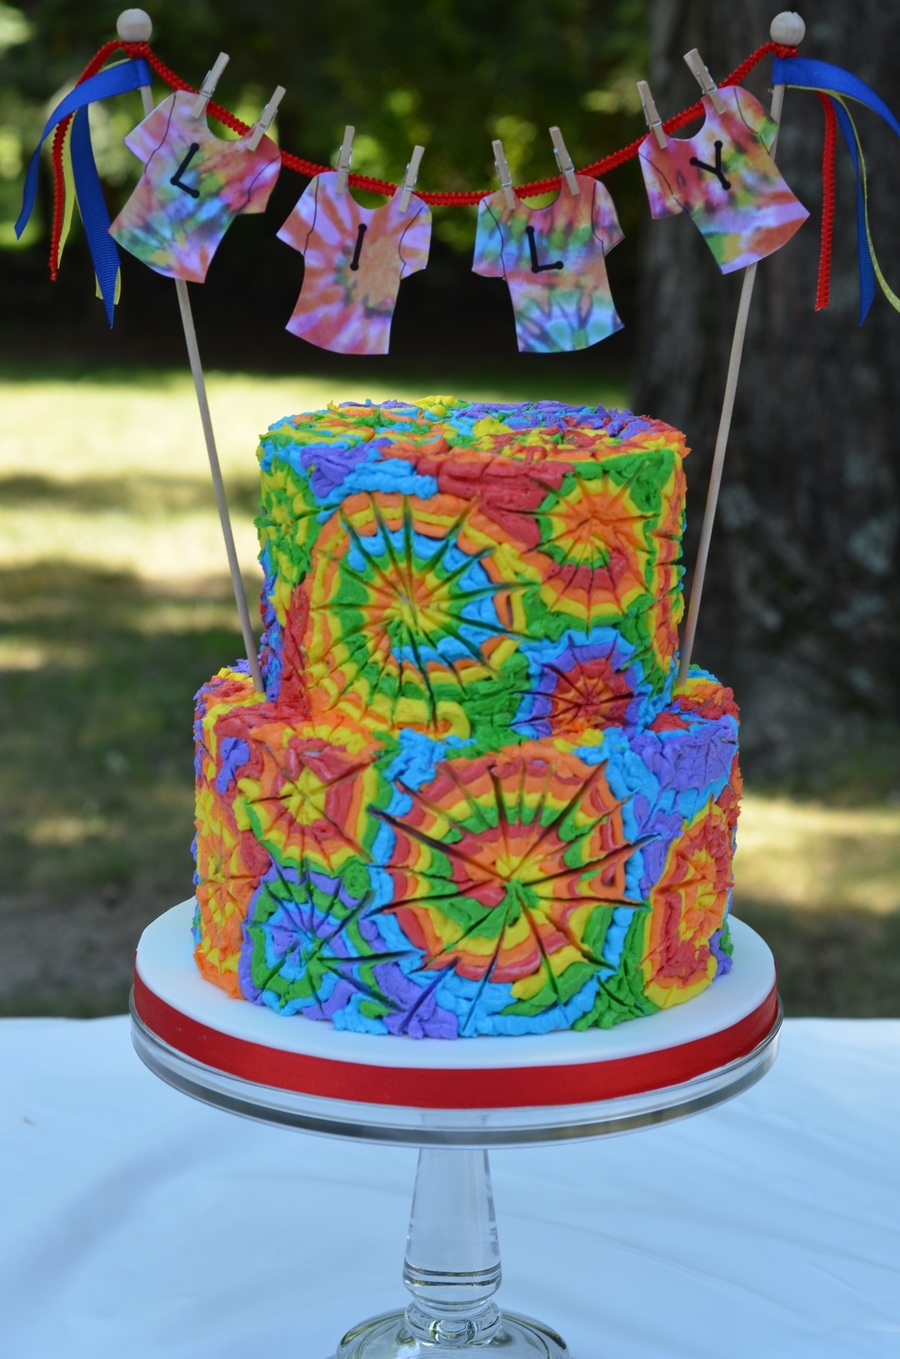 Astounding I Made This Cake For A Tie Dye Birthday Party The Cake Is Tie Dye Personalised Birthday Cards Paralily Jamesorg